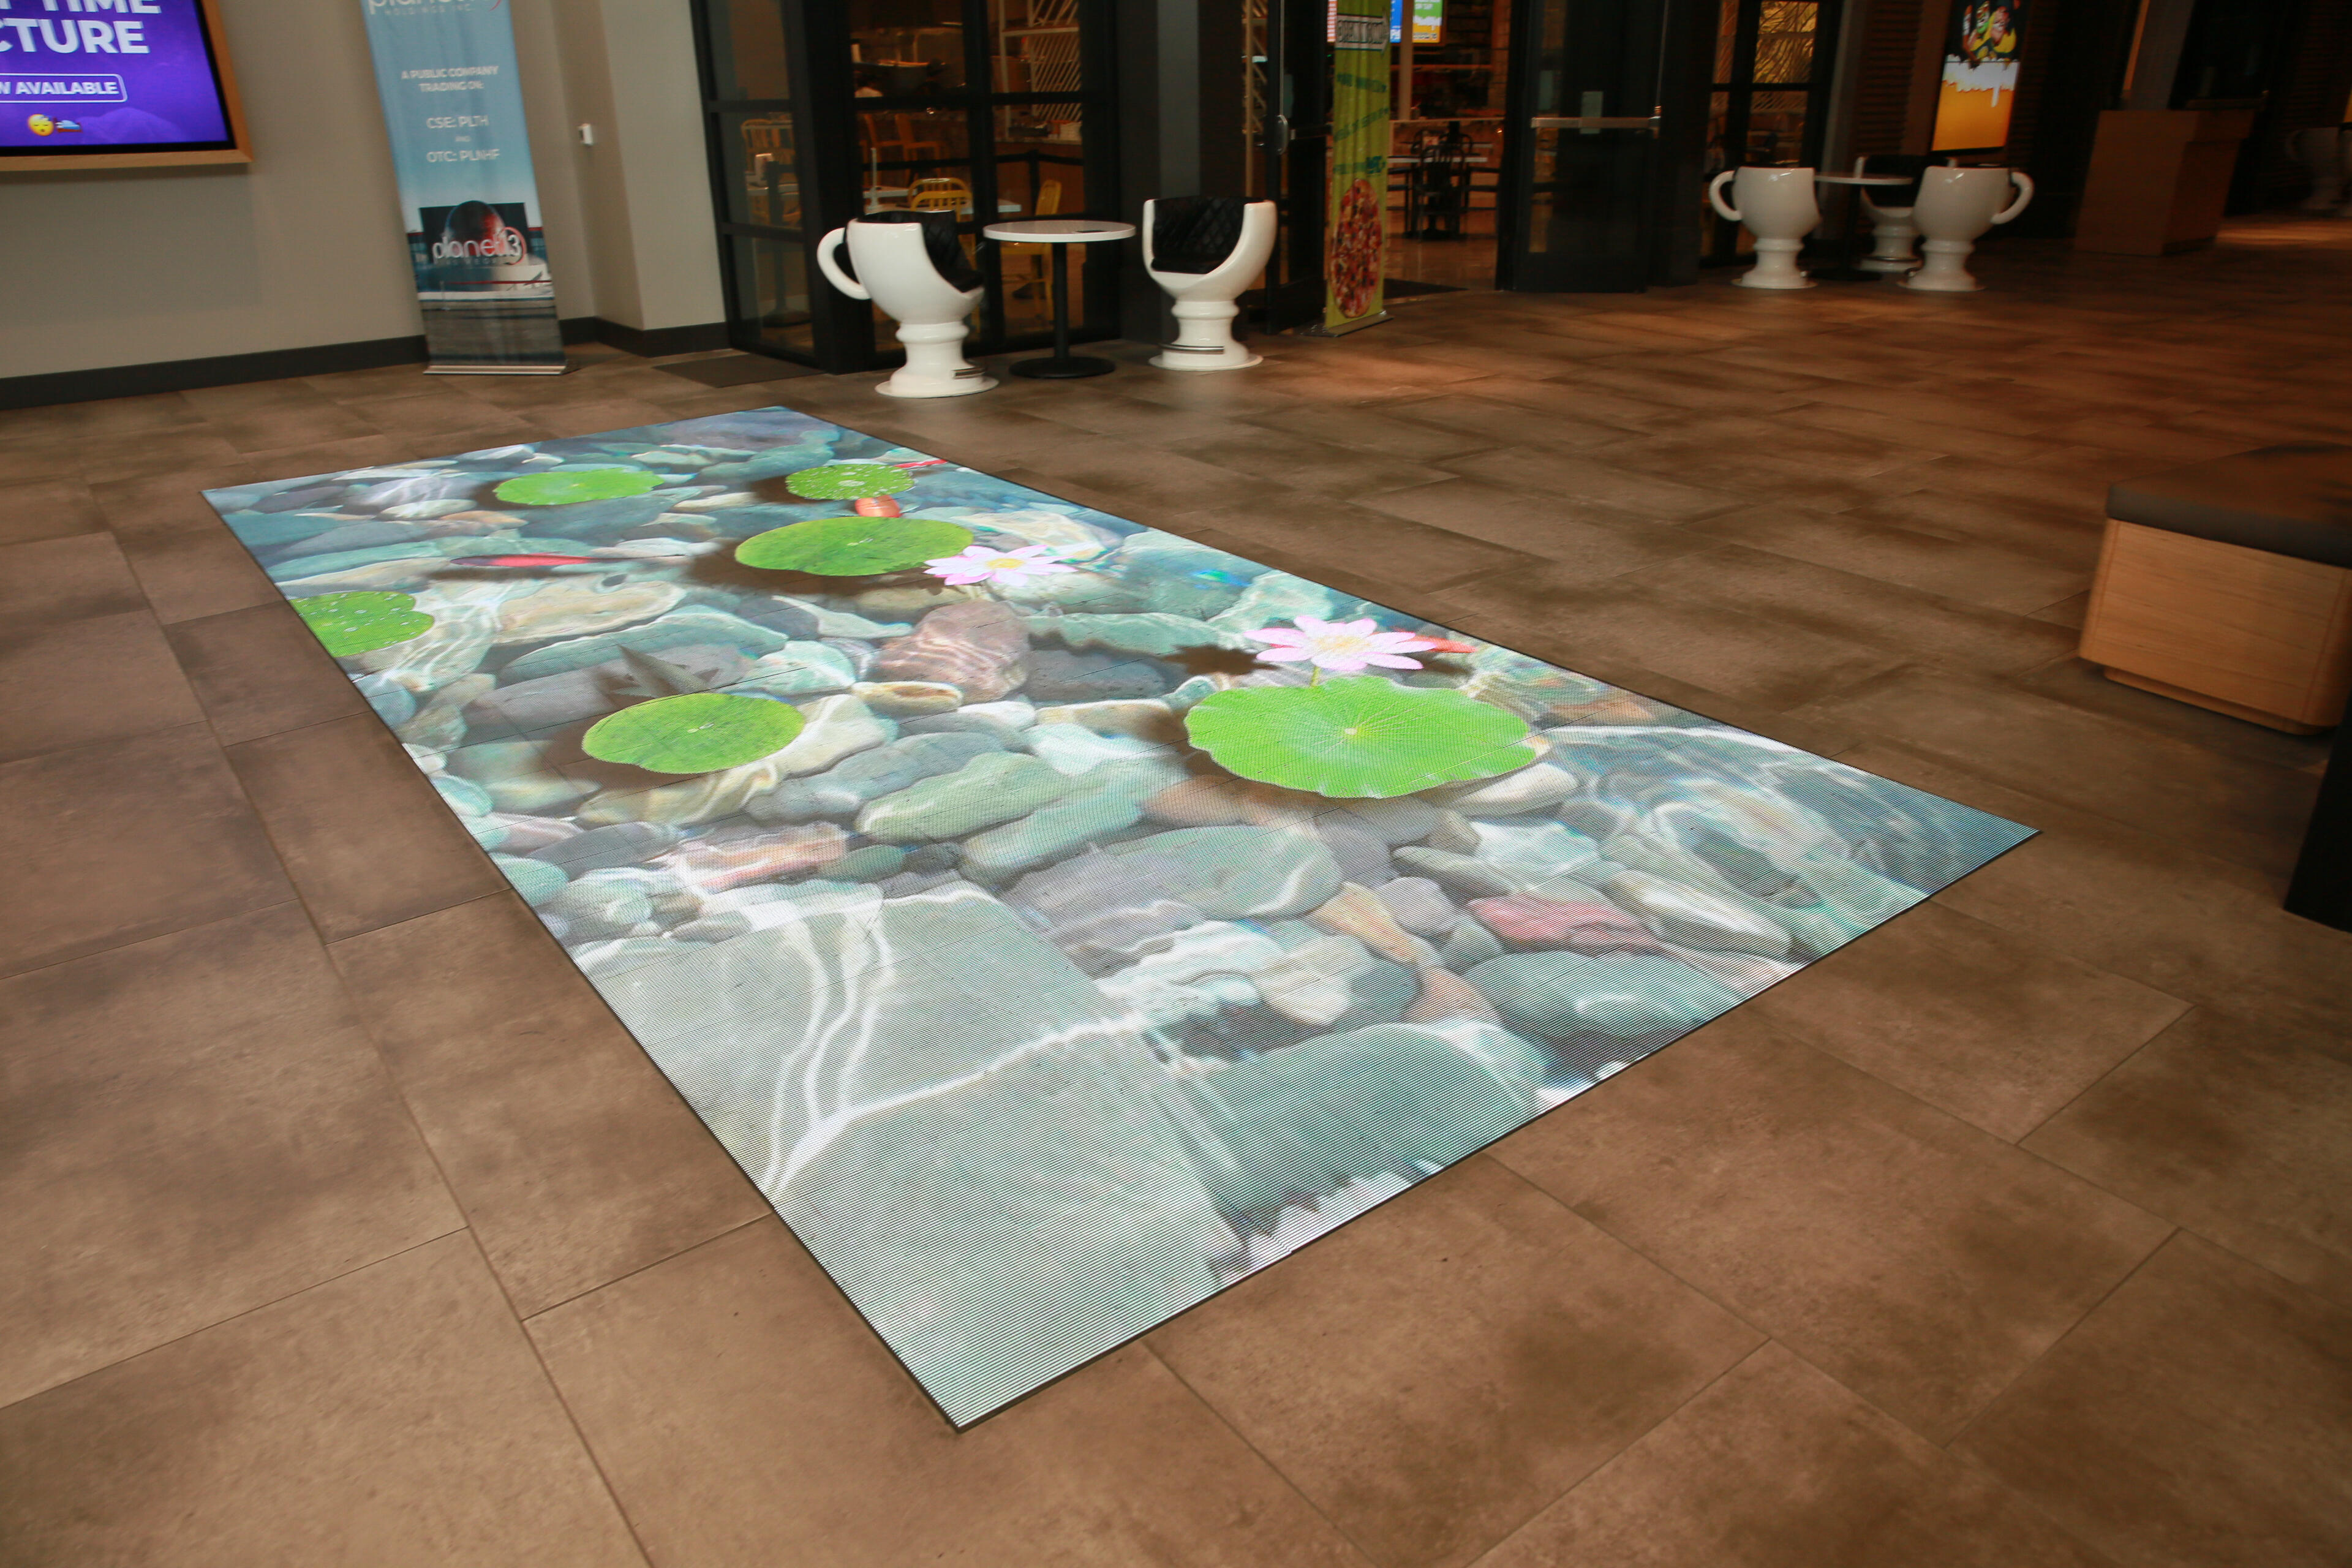 Planet 13 loves showy tech! Check out this screen in the floor in the entryway, just past the check-in desks.